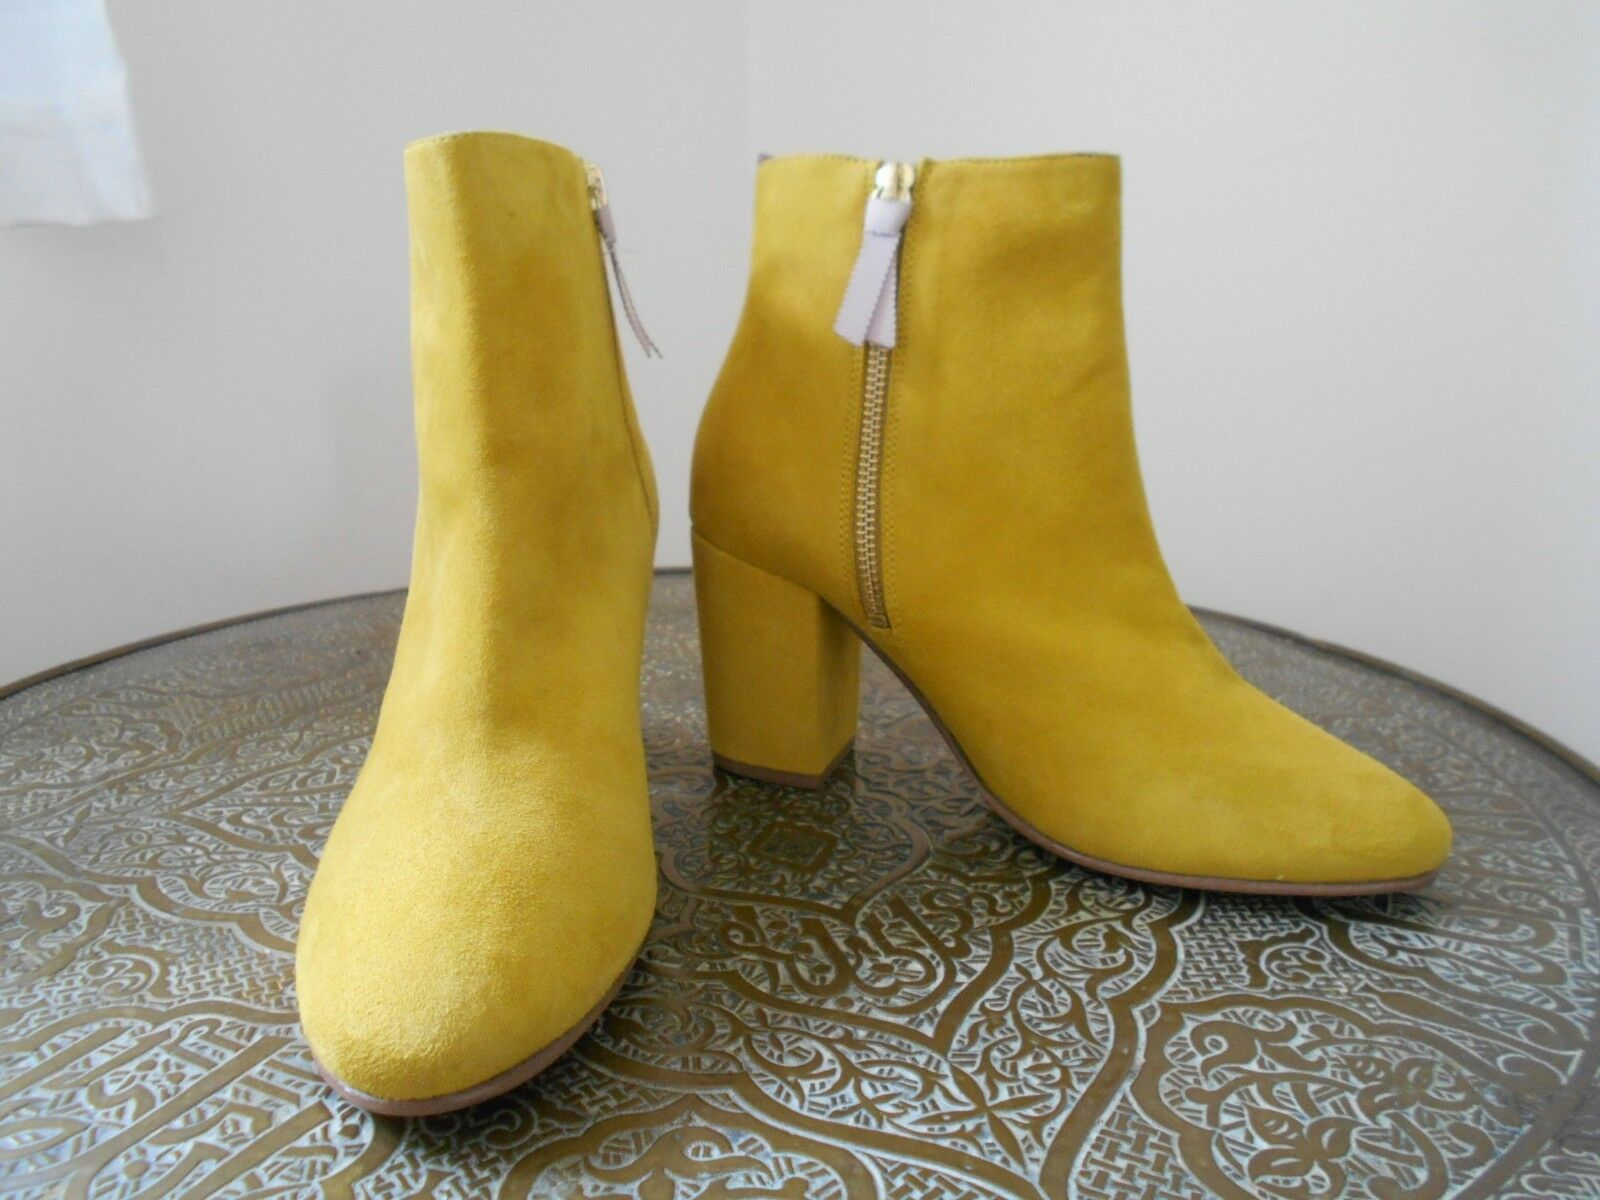 BODEN  New  Etta Ankle Boots - - - Yellow Suede - Size 38/5 - This Year - Sold Out f8d447